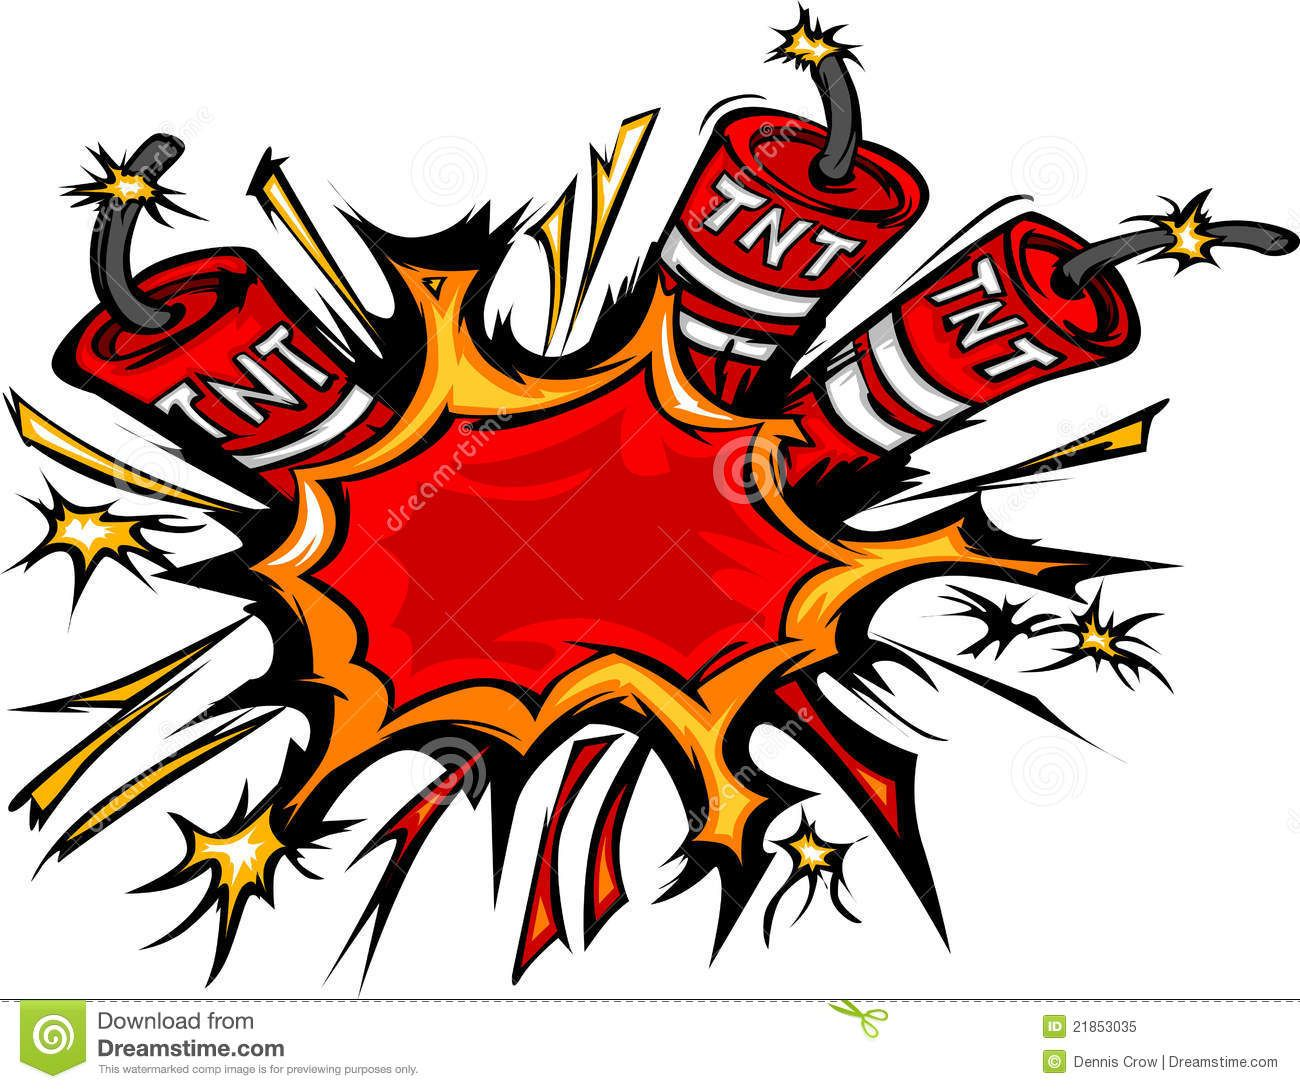 Dynamite explosion clipart black and white image library cartoon images of tnt | Royalty Free Stock Photo: Dynamite Explosion ... image library